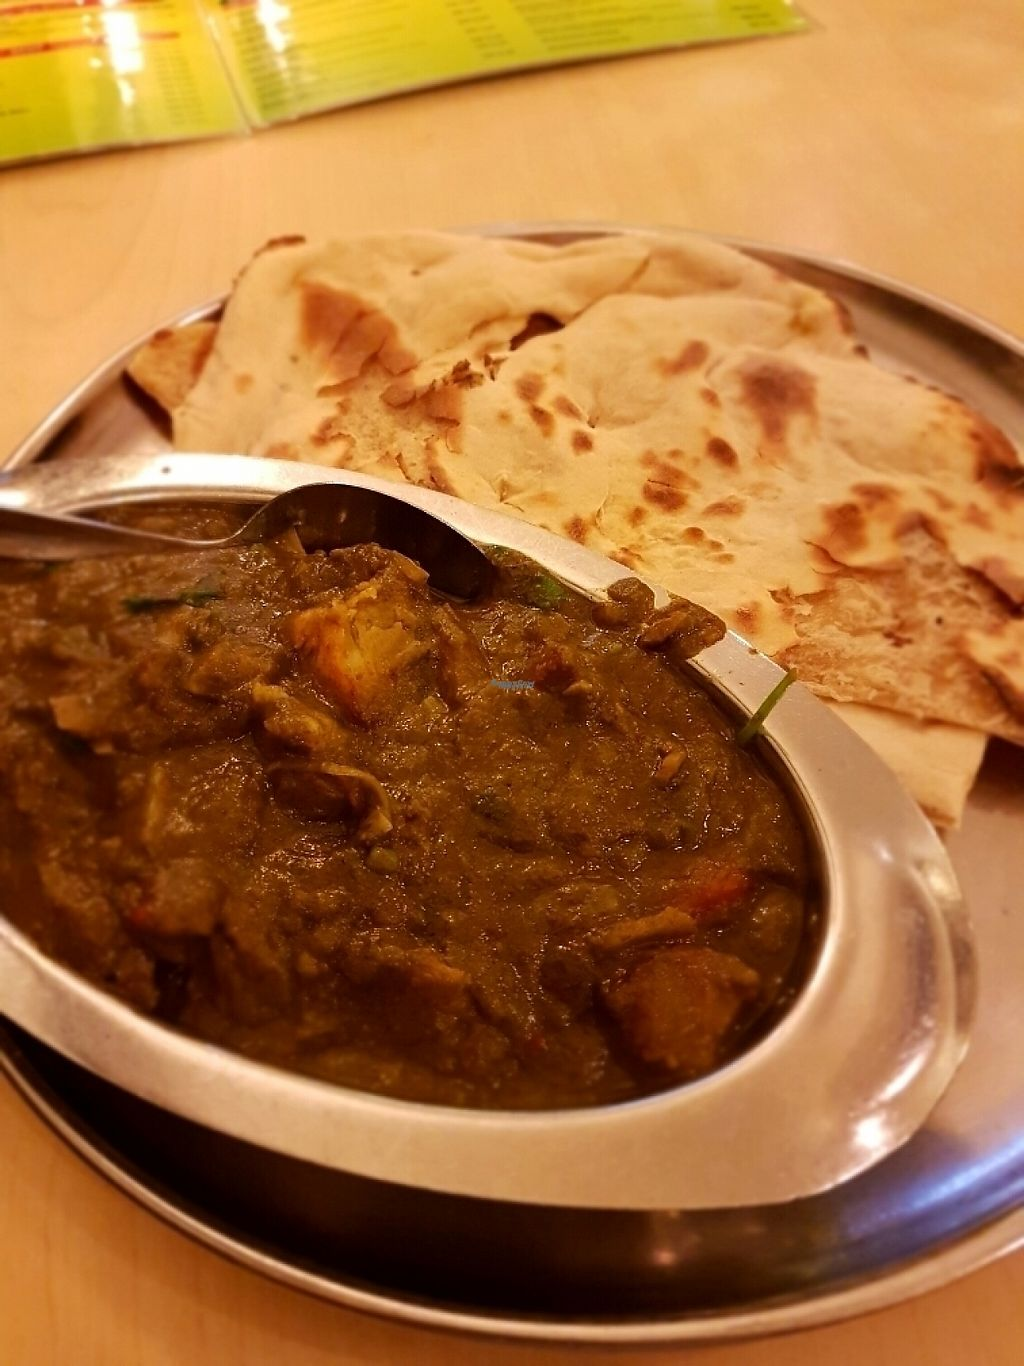 """Photo of Woodlands  by <a href=""""/members/profile/tantantan"""">tantantan</a> <br/>Potato spinach curry <br/> January 24, 2017  - <a href='/contact/abuse/image/141/215606'>Report</a>"""